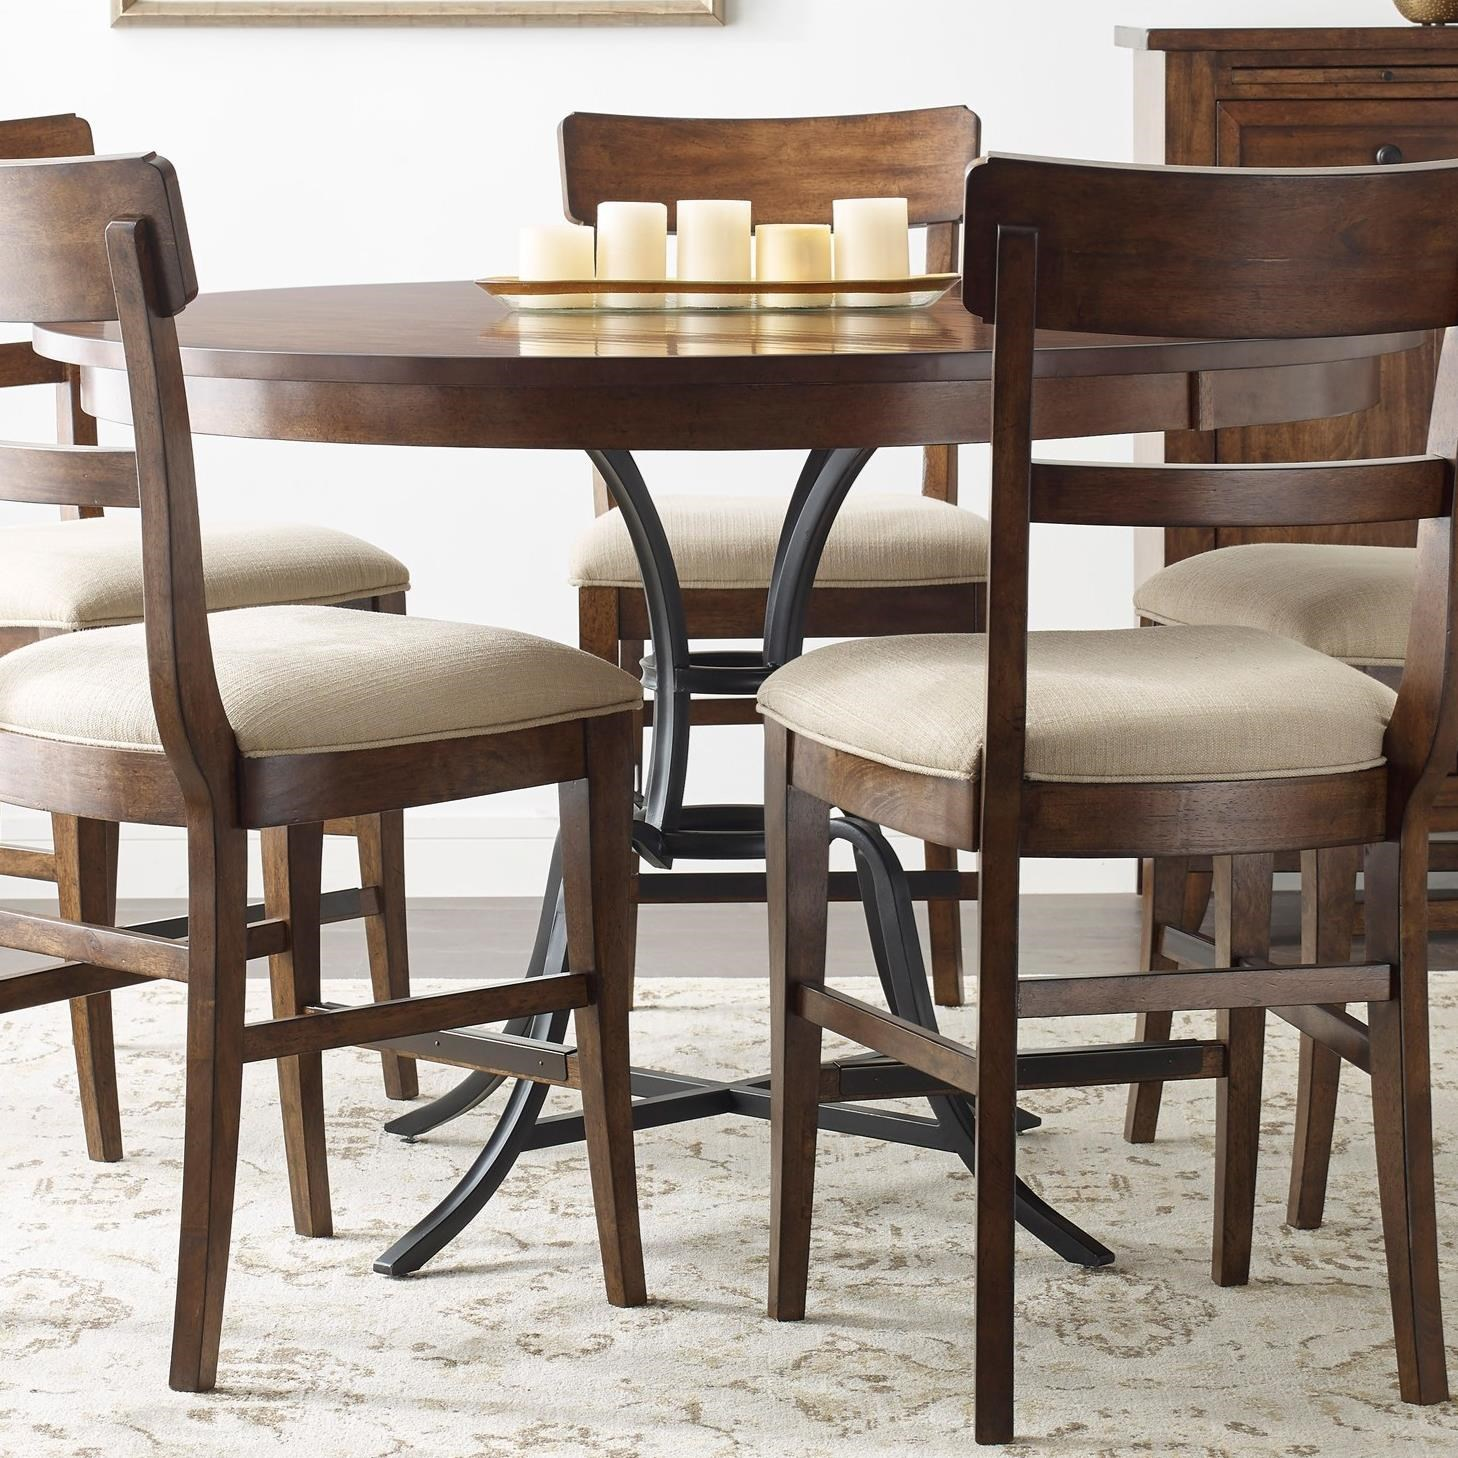 kincaid furniture the nook 54 round solid wood counter height table with rustic metal base. Black Bedroom Furniture Sets. Home Design Ideas